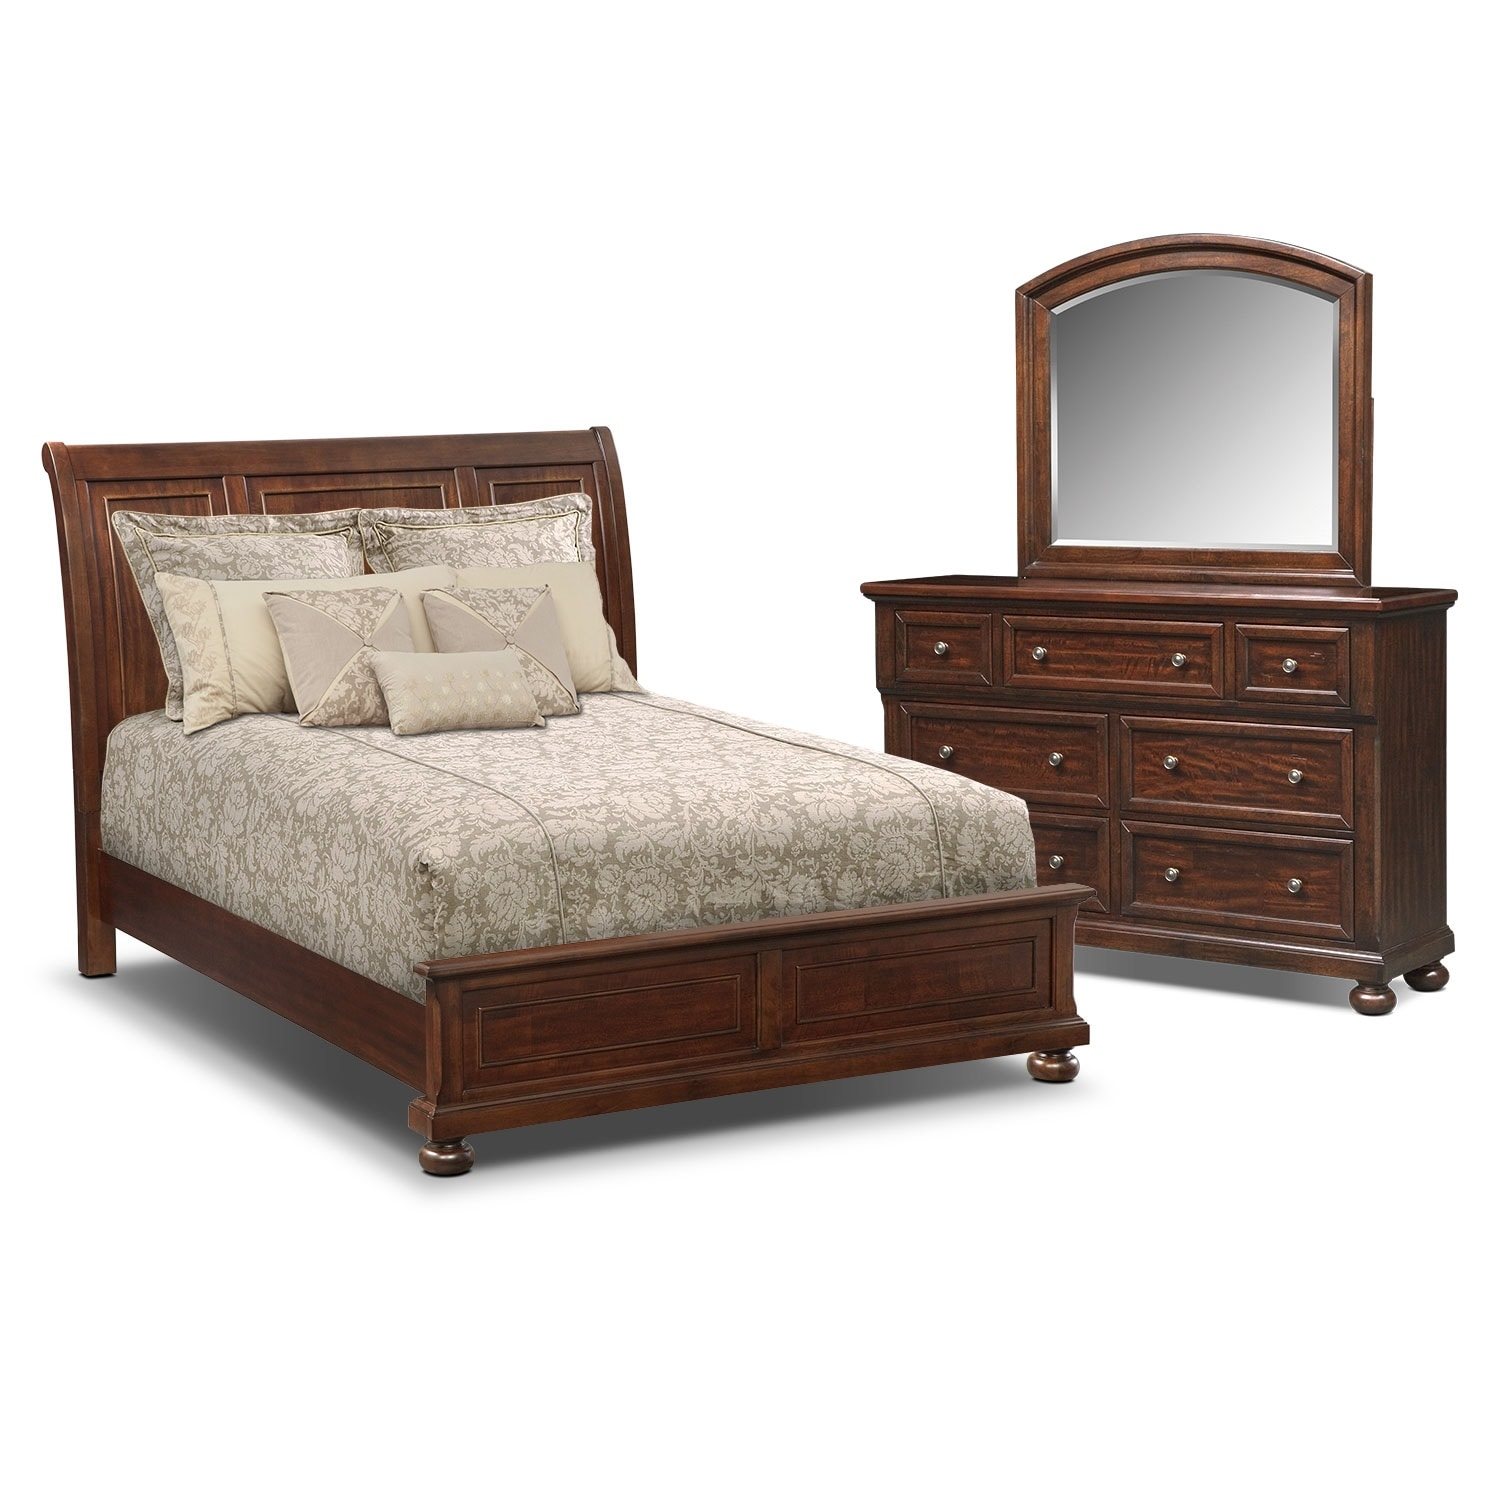 Bedroom Furniture - Hanover 5-Piece King Panel Bedroom Set - Cherry